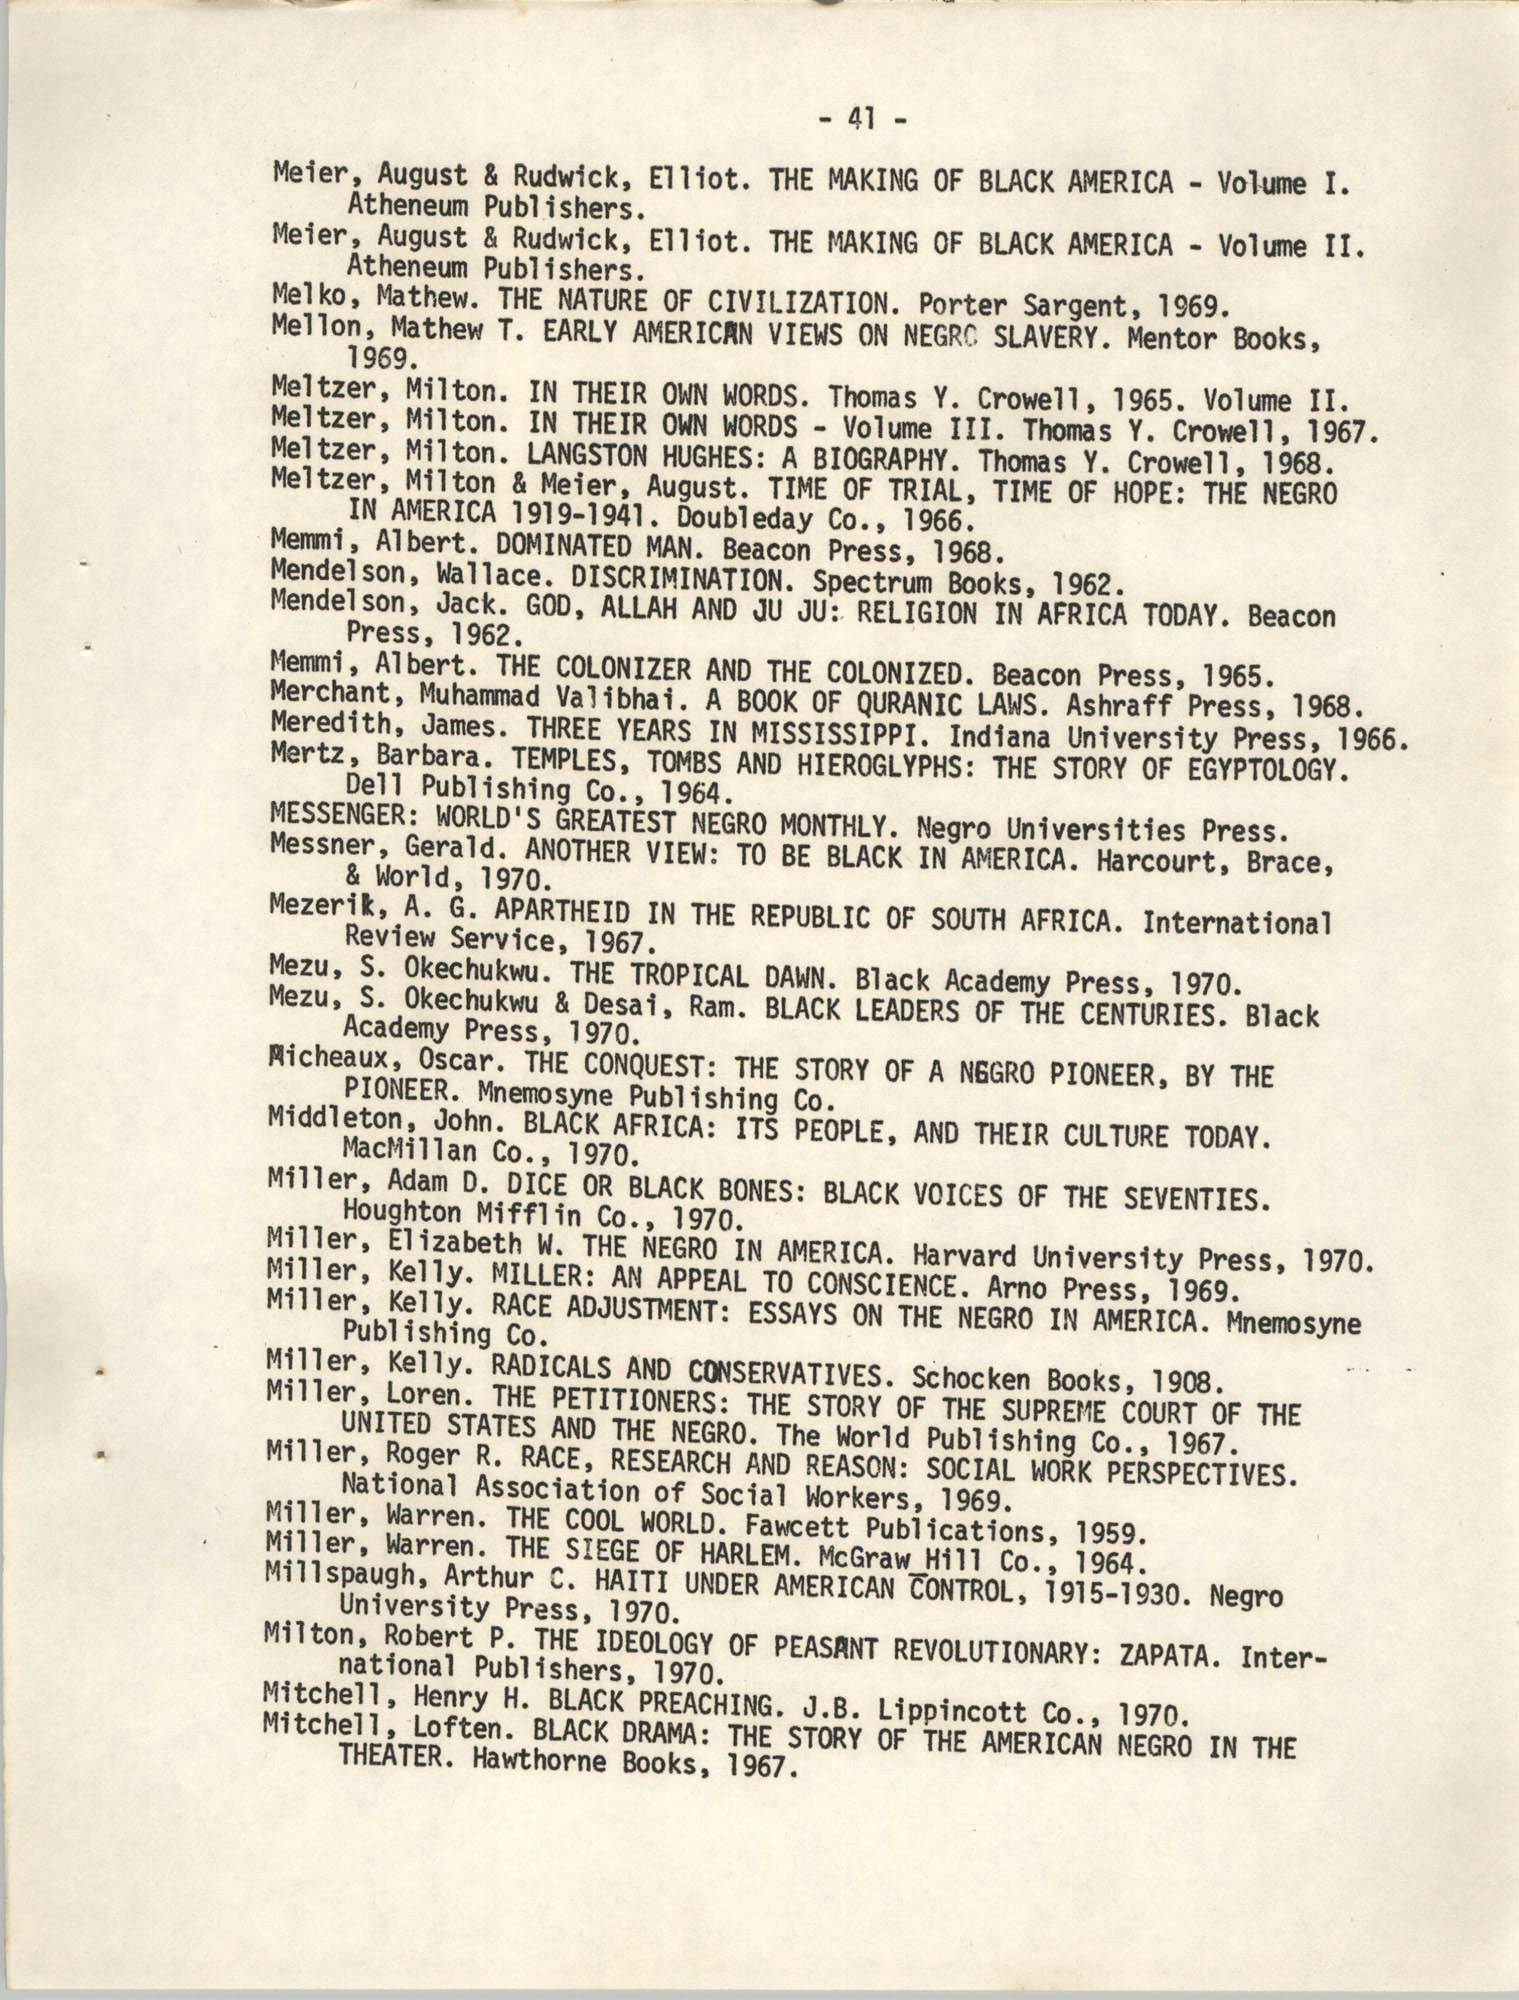 Howard University Department of Afro-American Studies Reading Materials, Page 41